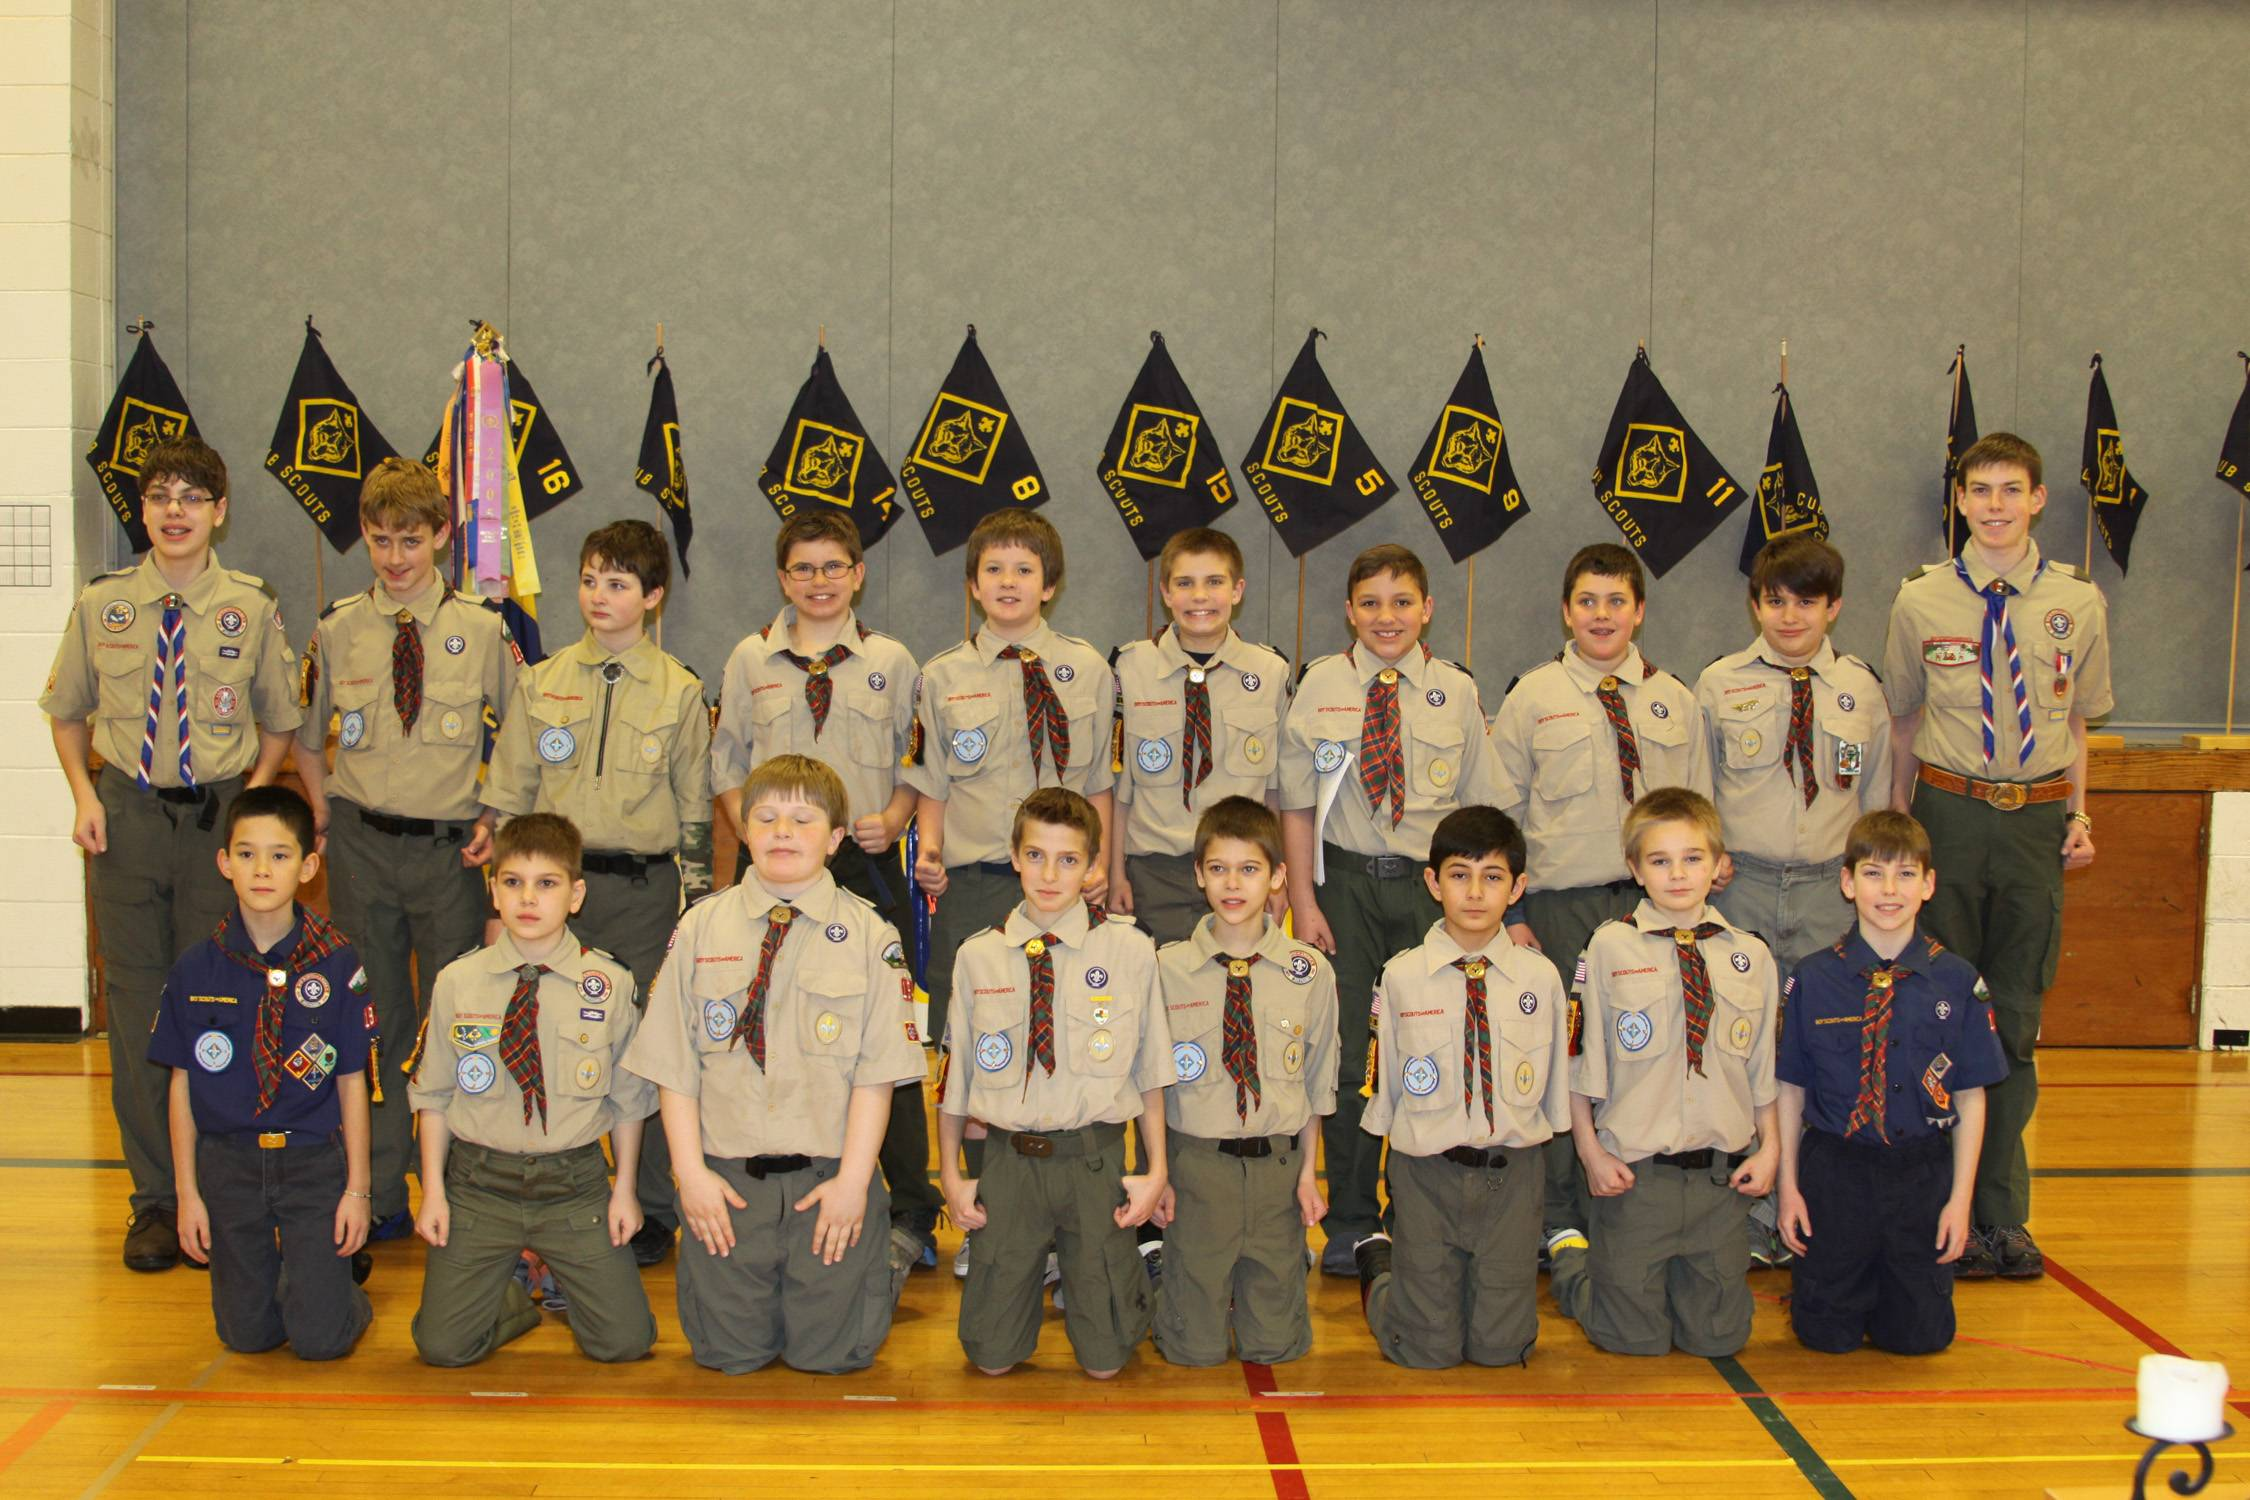 Shown are Pack 194's Webelos IIs who crossed over to Boy Scouts at the pack's 50th anniversary celebration and crossover ceremony. Front row from left: William Salton, Nathan Stevens, Evan Hertzler, Clayton Fayer, Jason Sekili, Kavi Jalota, Chris Mack and Kevin Stone. Back row from left: Den Chief Spencer Stevens, Dylan Buelow, Zachary Giamis, Randy Moss, Scott Sanderson, Jack Calsin, Miles Jajich, Matthew Balmes, Joseph Mattson and Den Chief David Stone.